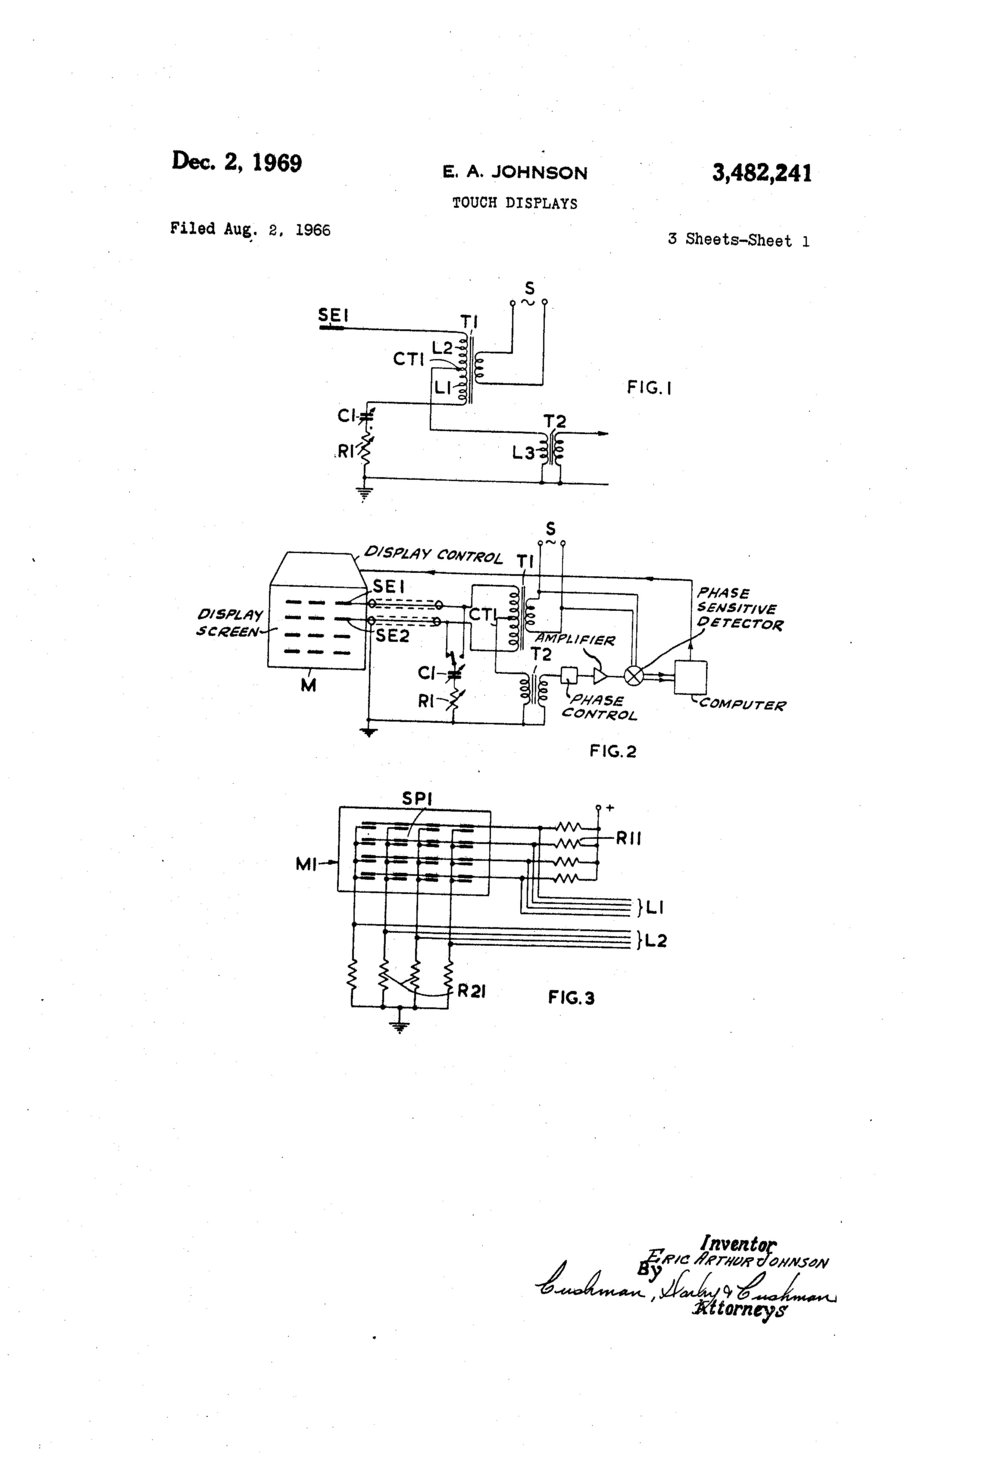 Taken from Johnson's 1969 Patent Document for Touch Displays